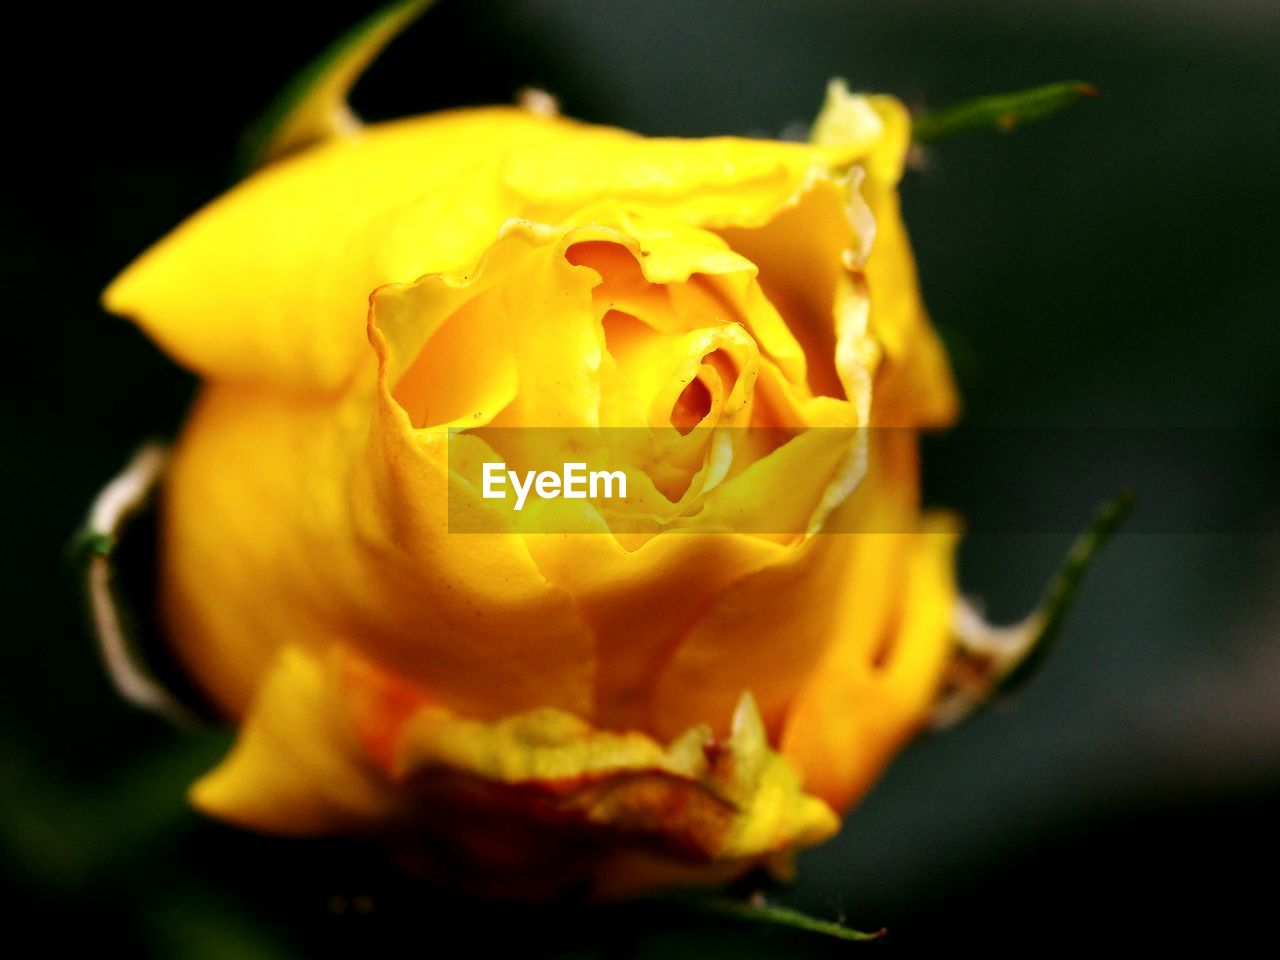 flower, petal, flower head, fragility, freshness, nature, close-up, growth, beauty in nature, no people, rose - flower, outdoors, yellow, plant, blooming, day